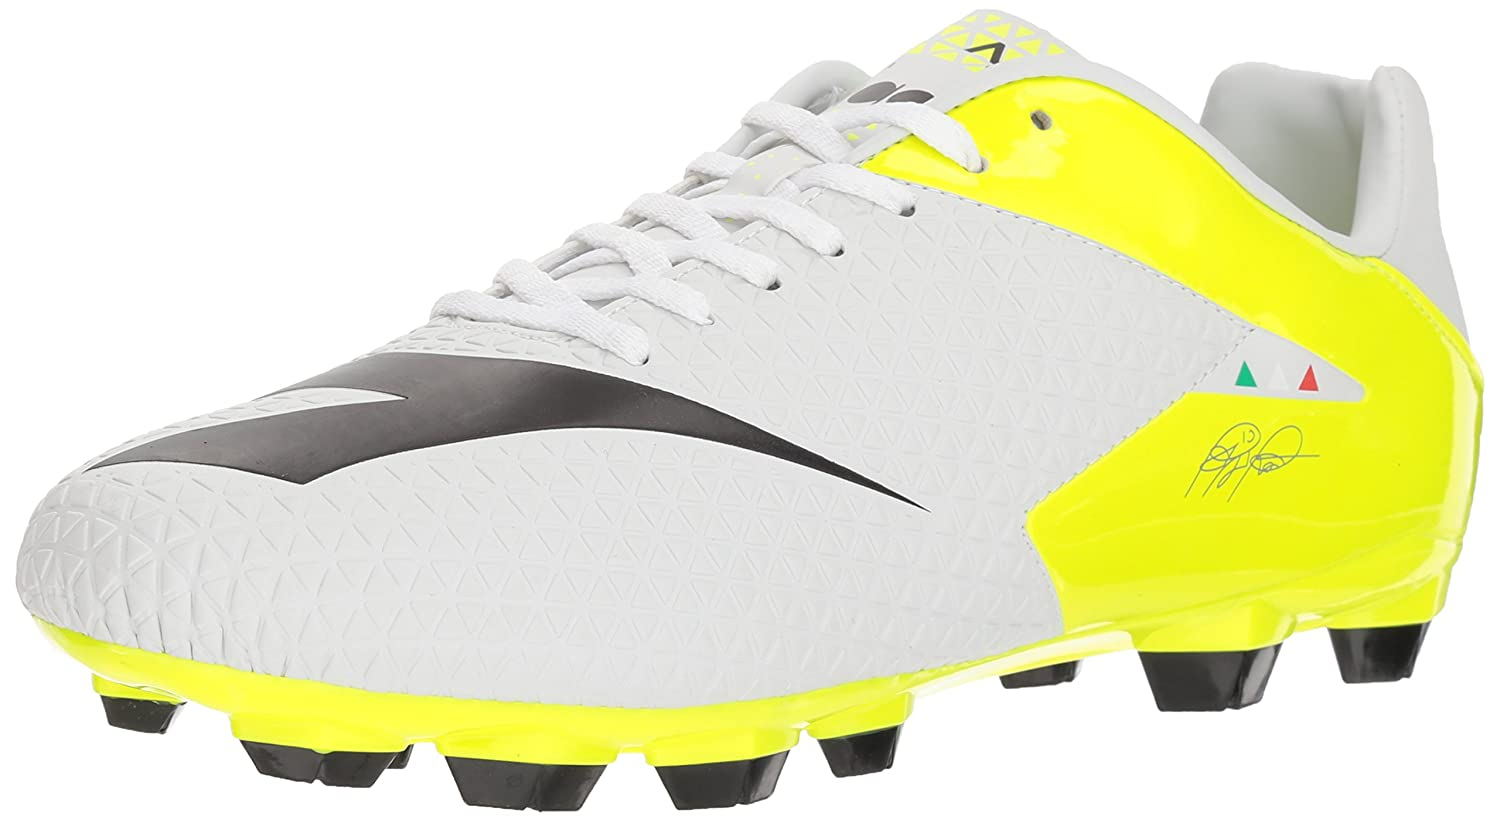 Diadora ユニセックスアダルト B076932ZMZ 12 D(M) US|White/Black/Fluo Yellow White/Black/Fluo Yellow 12 D(M) US